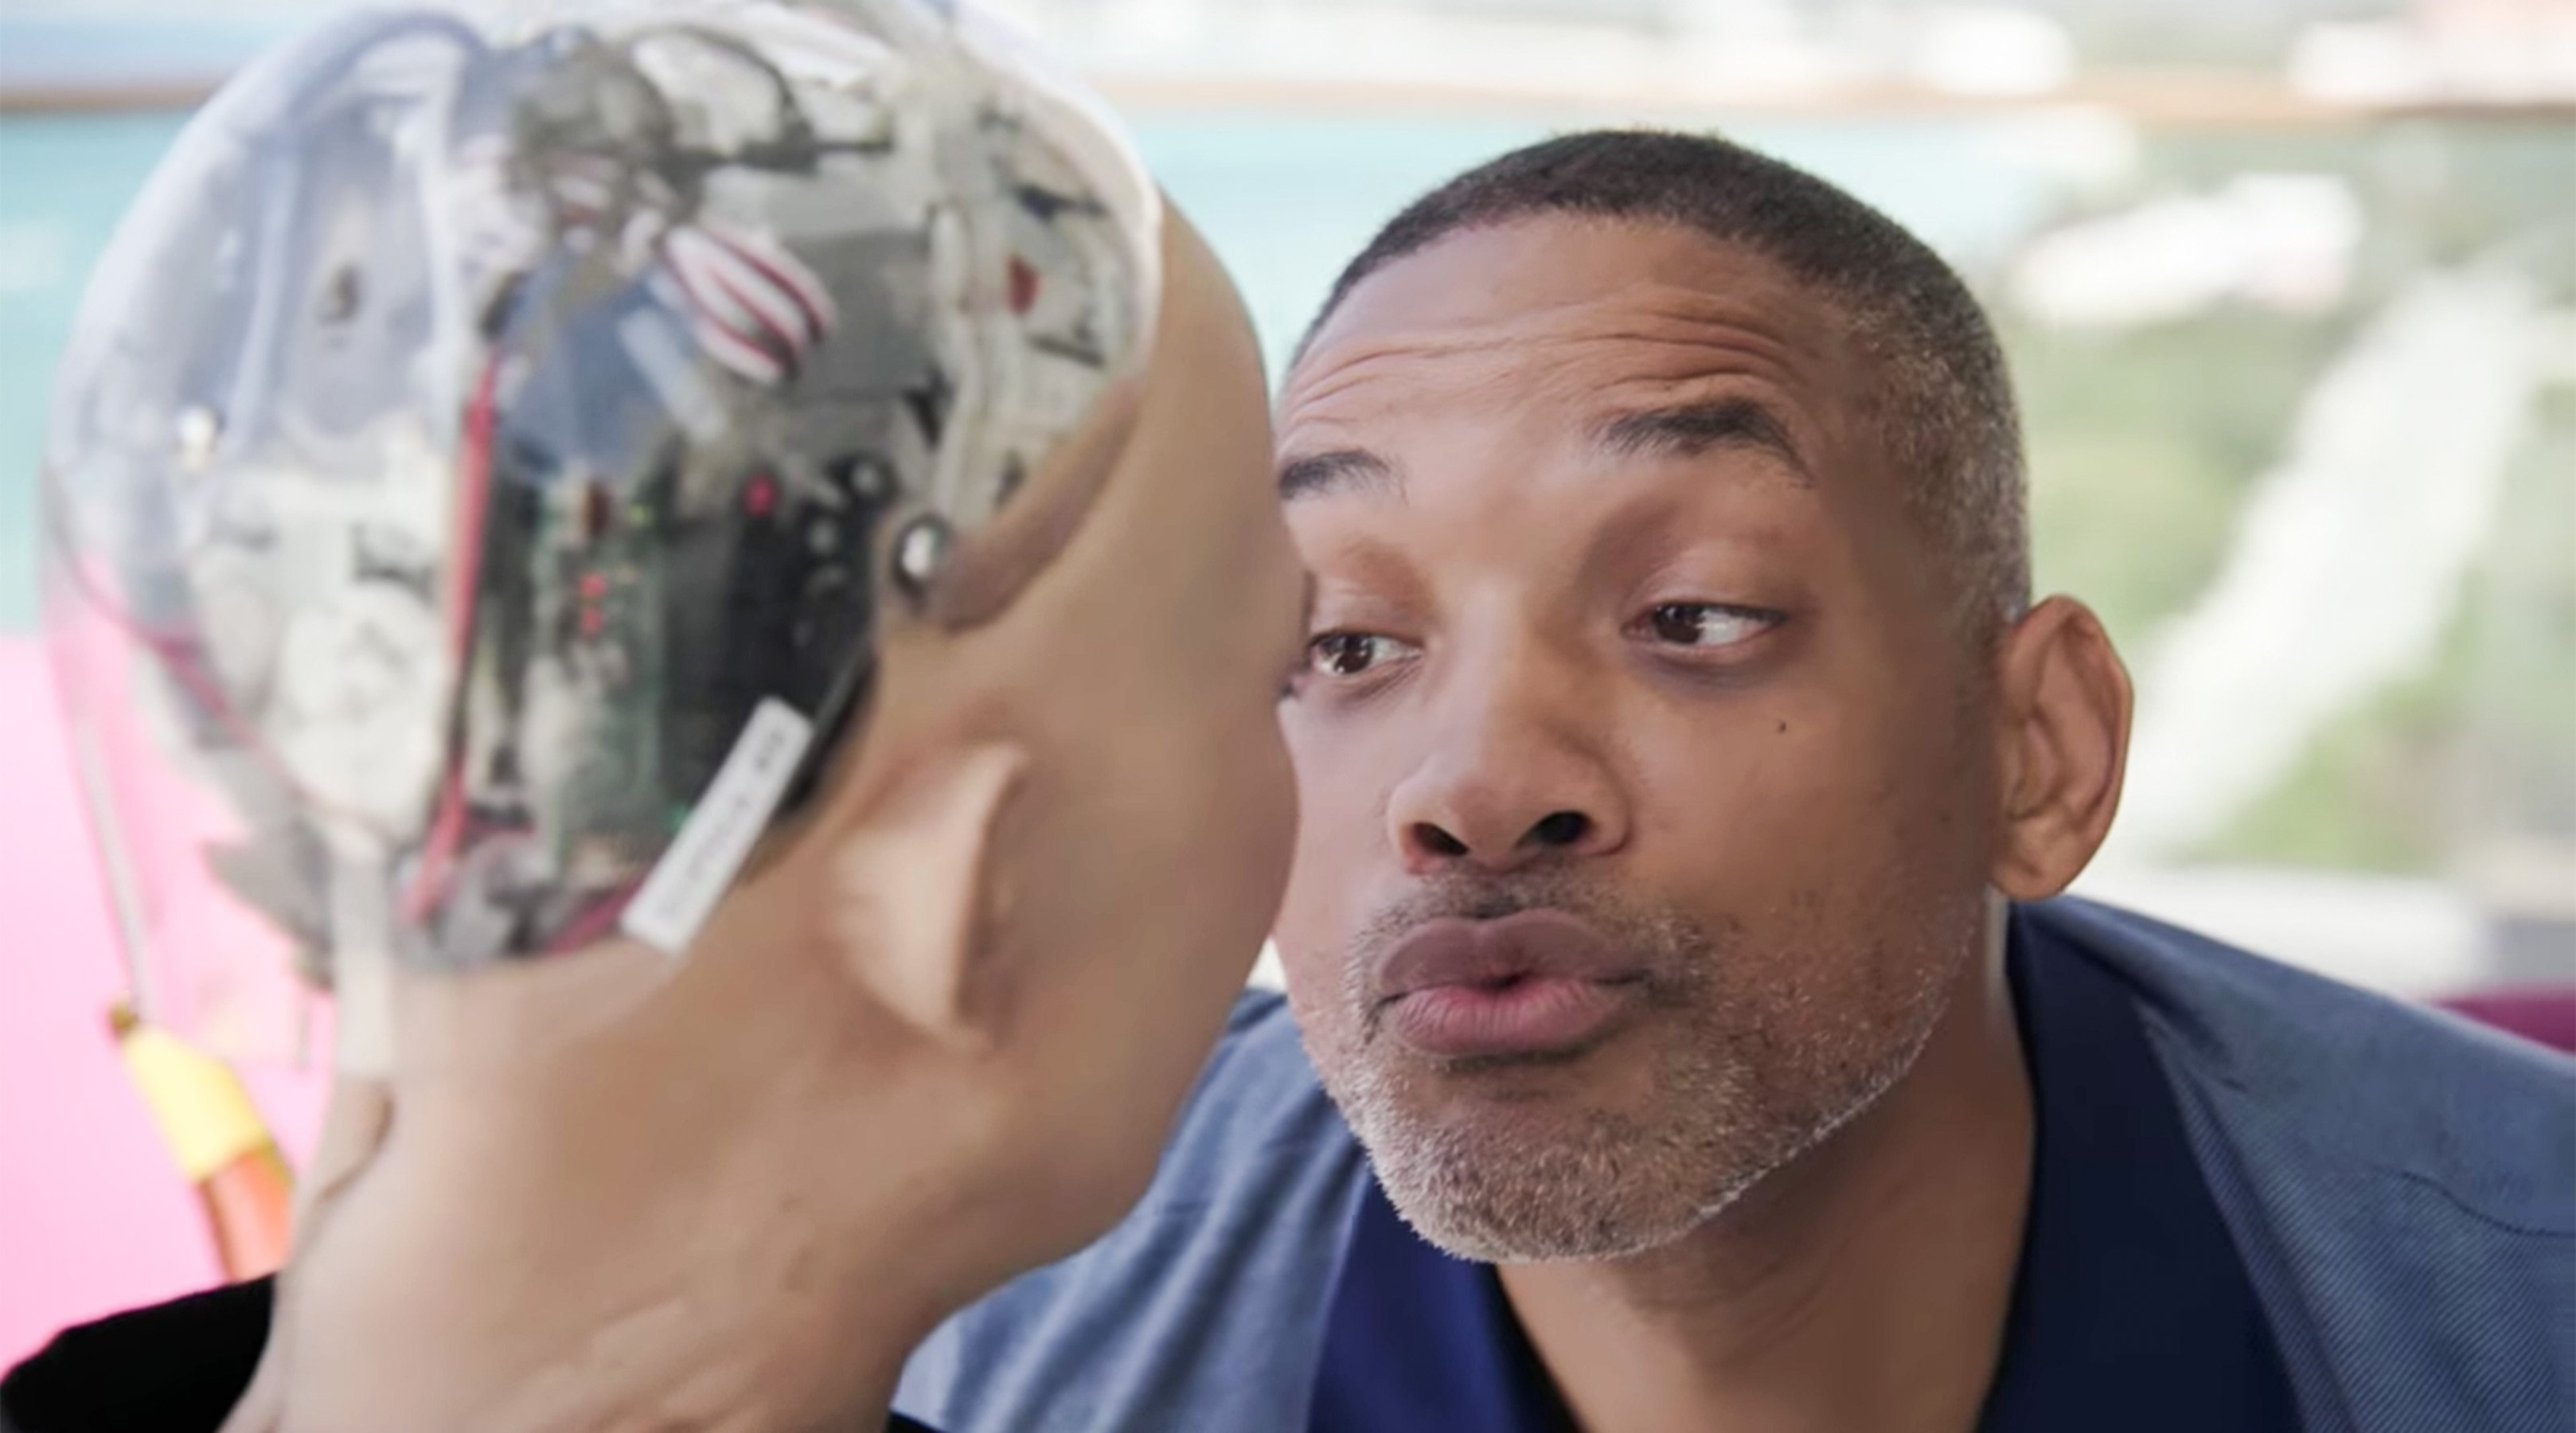 Will Smith, Sophia the Robot go on an awkward date